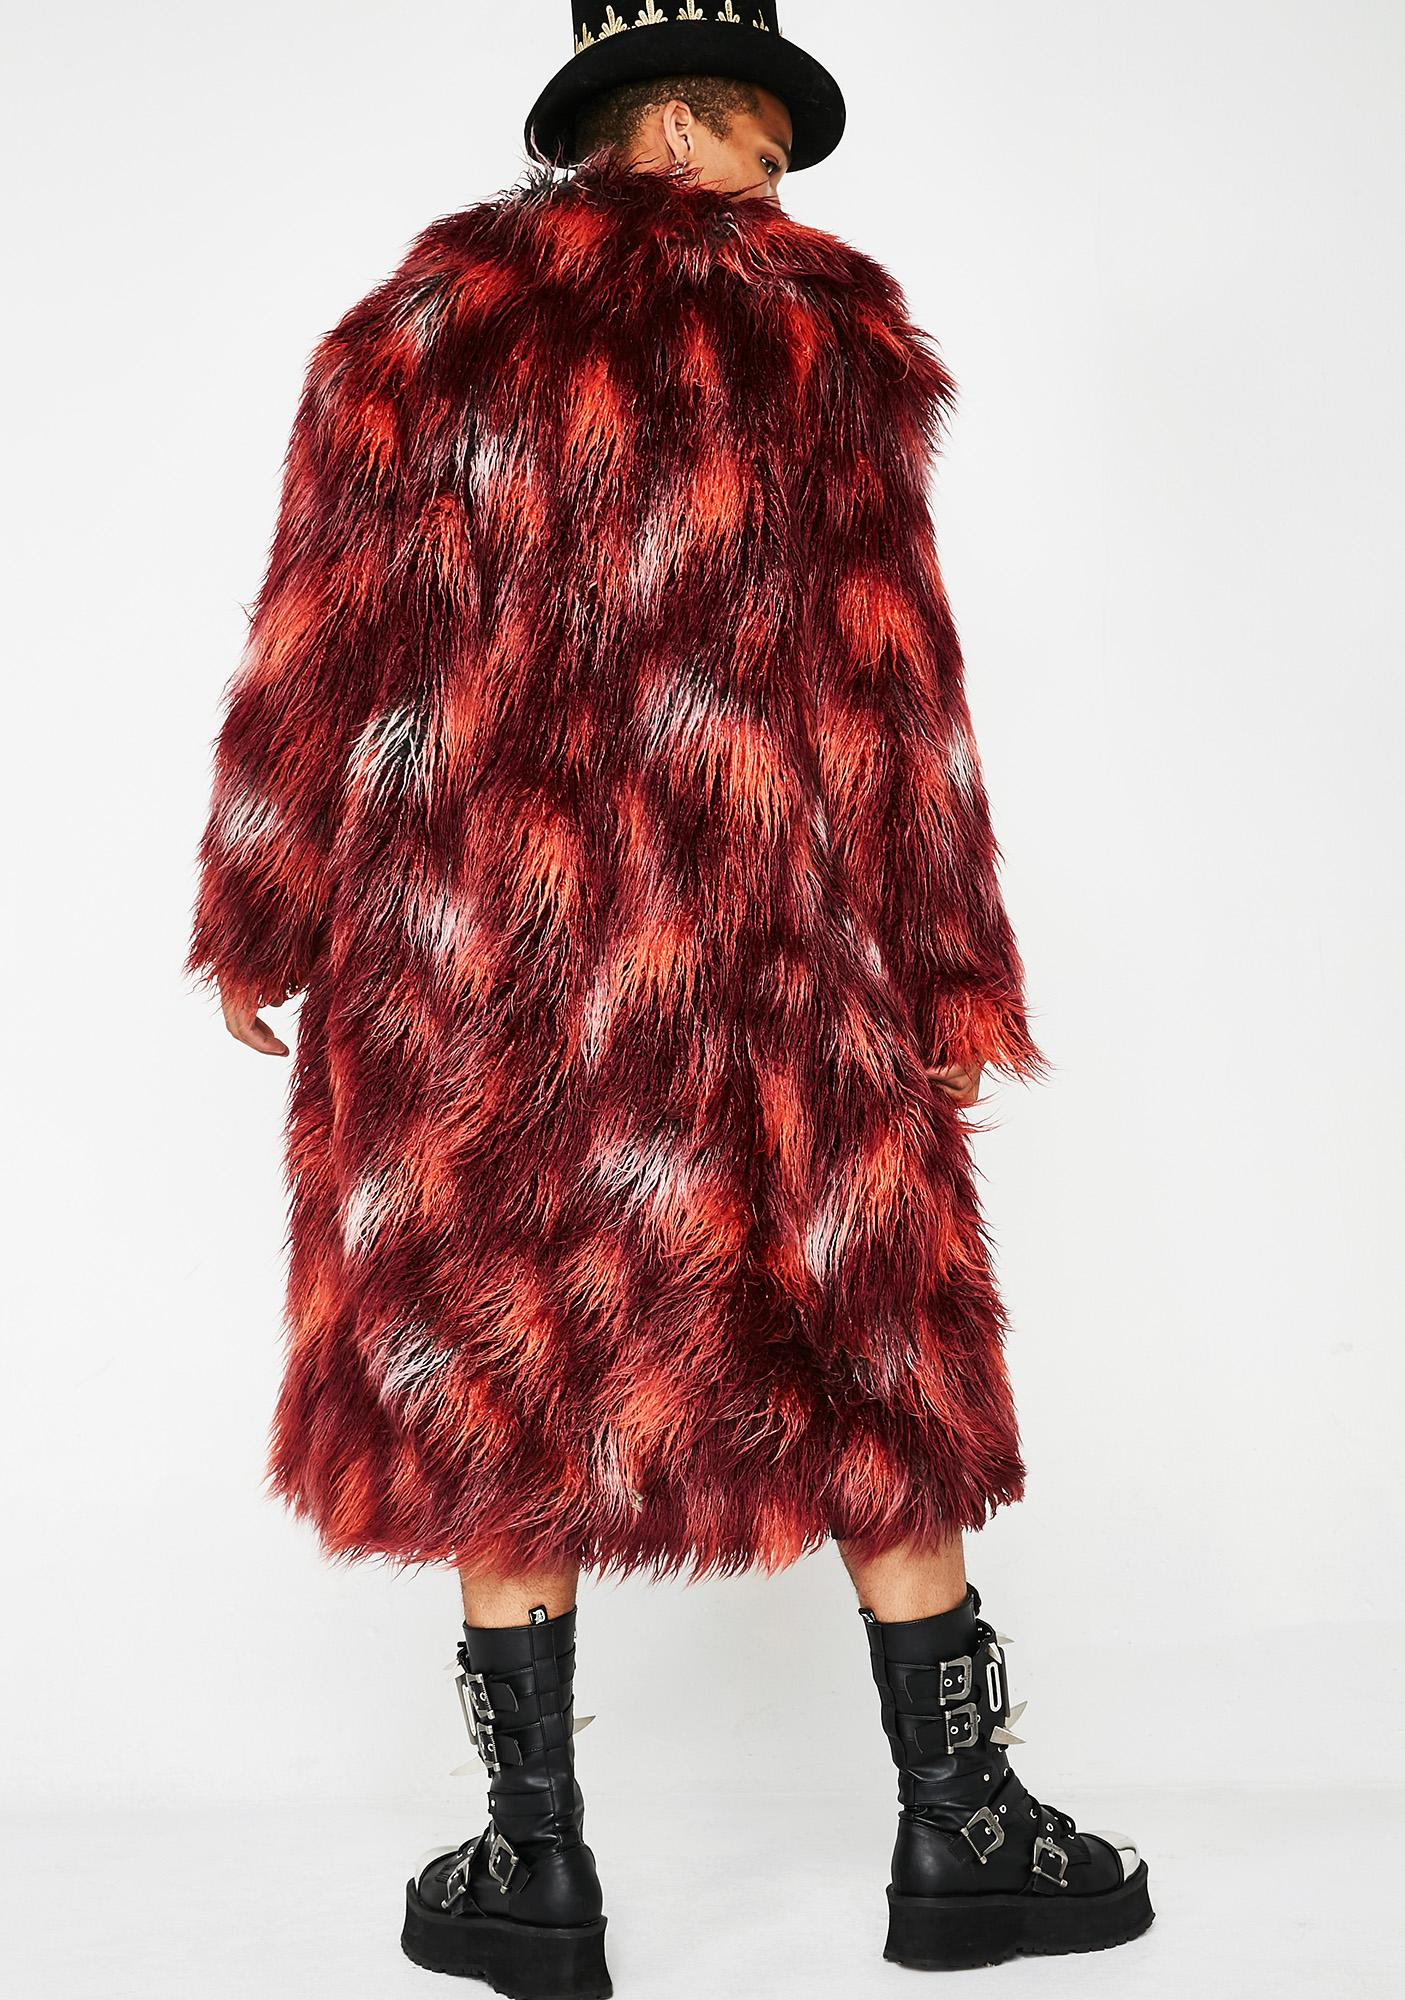 Club Exx Tripped Out Tycoon Unisexx Fur Coat